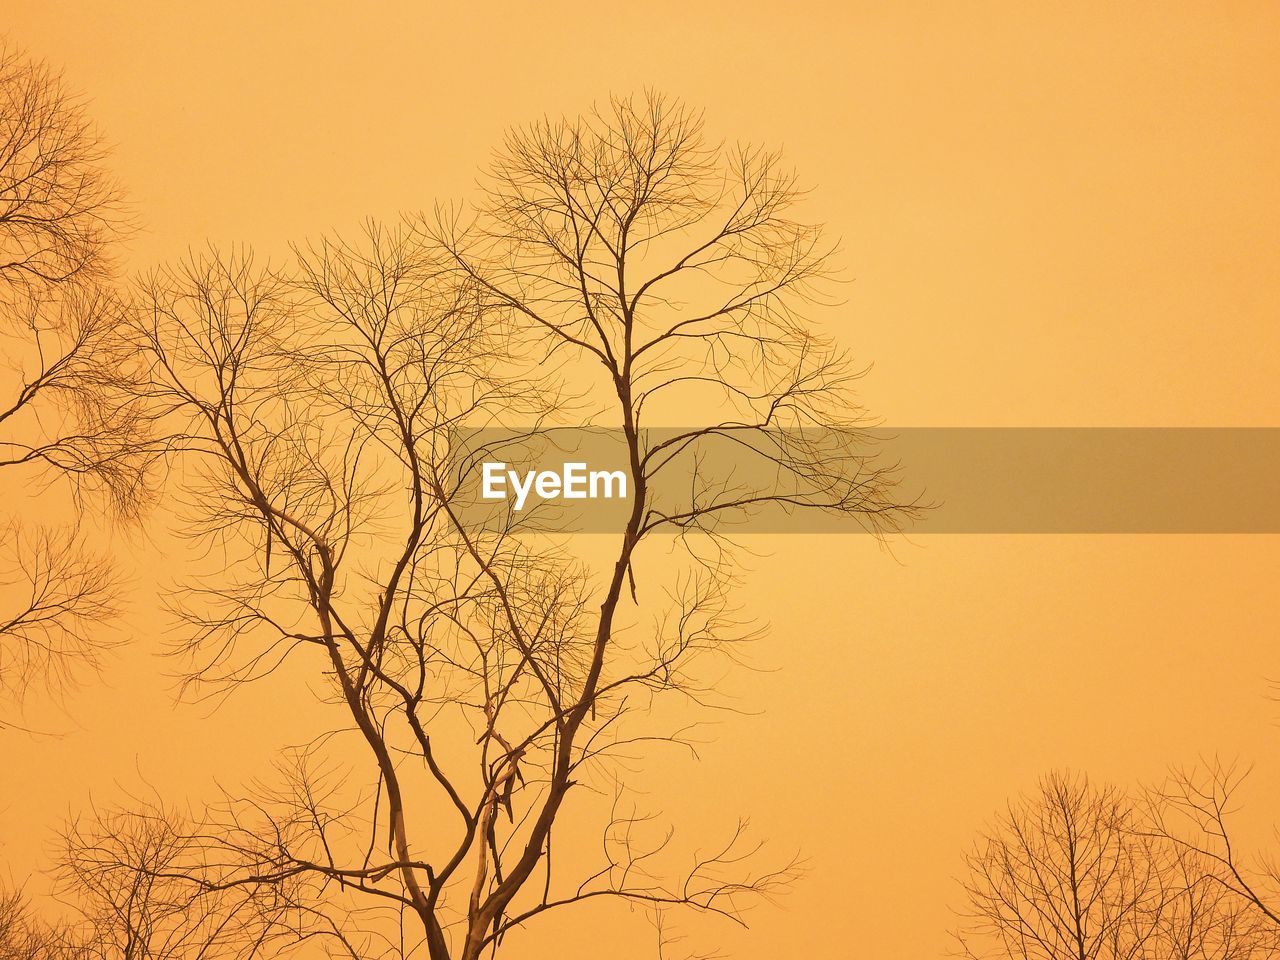 tree, bare tree, sunset, tranquility, sky, branch, beauty in nature, no people, plant, scenics - nature, orange color, silhouette, nature, low angle view, tranquil scene, clear sky, outdoors, idyllic, non-urban scene